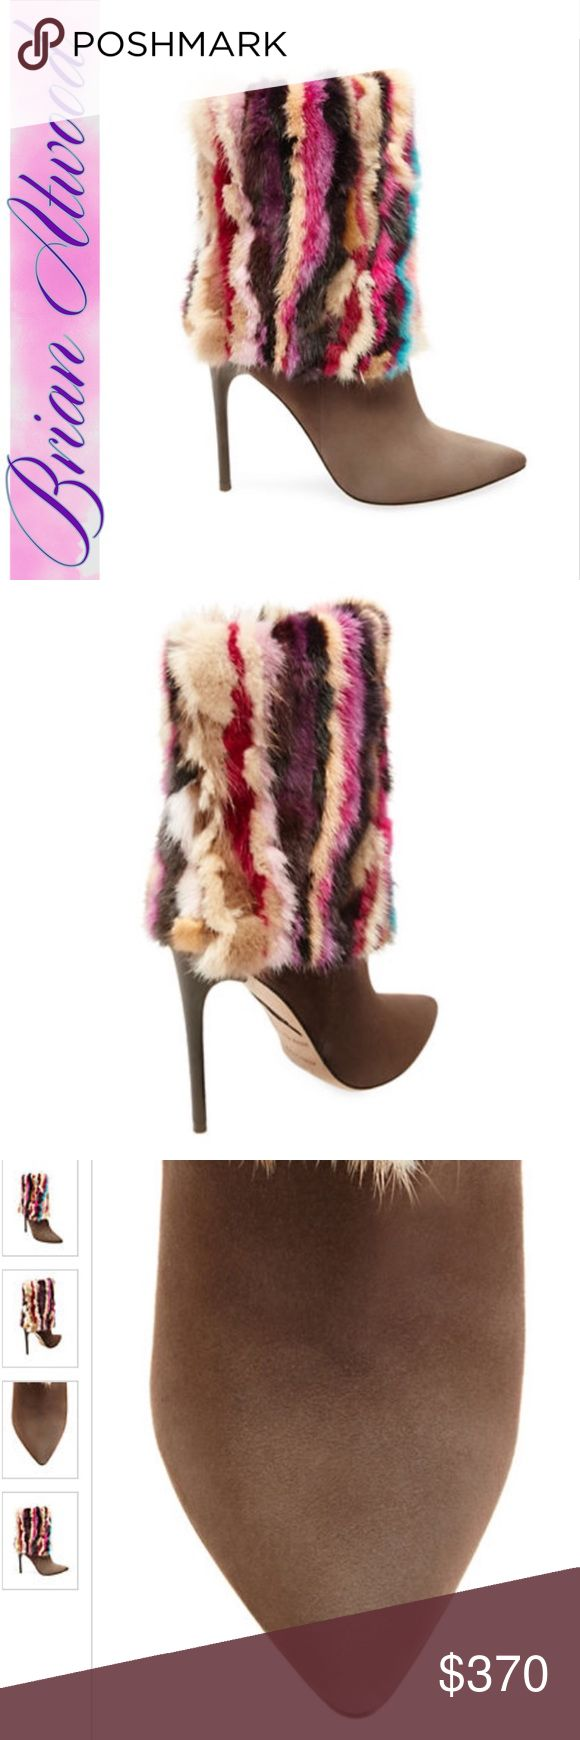 Brian Atwood mink and suede bootie Fabulous! I mean just look at these!! You'll never want to take the m off. Put your feet up and admire the luxury styling of these stellar boots. Art for your feet! BNIB! Brian Atwood Shoes Heeled Boots